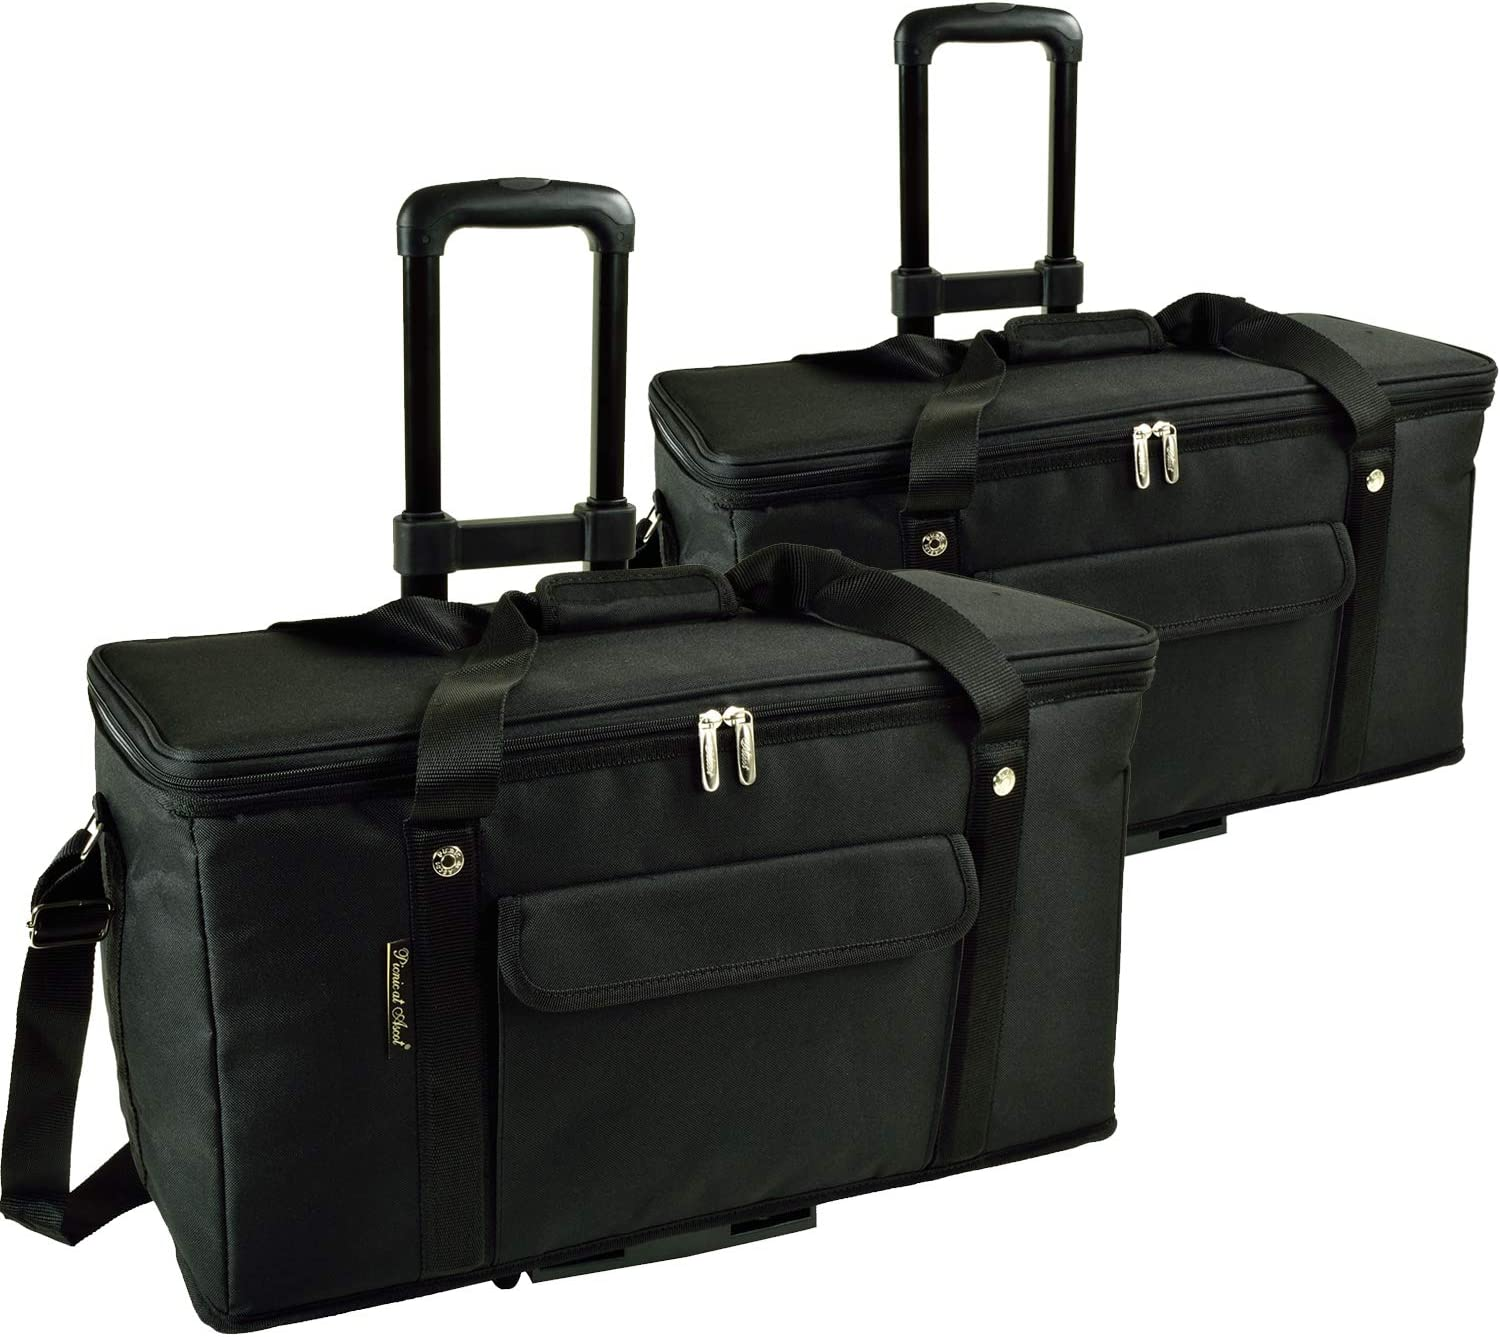 Picnic at Ascot Ultimate Travel Cooler with Wheels- 36 Quart - Combines Best Qualities of Hard & Soft Collapsible Coolers - Black - Pack of 2